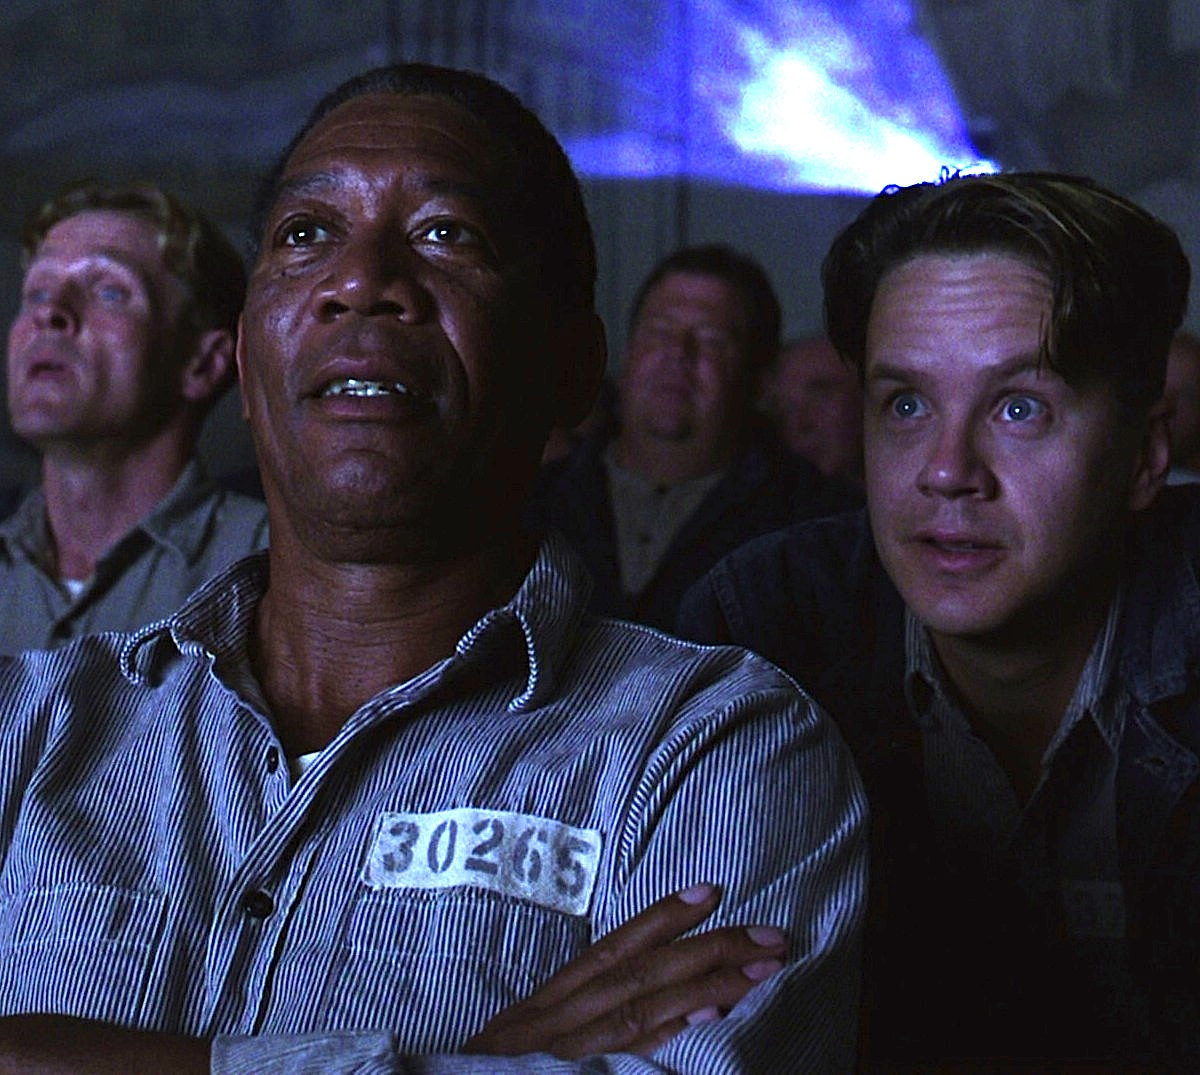 rita hayworth and shawshank redemption metaphor for life The shawshank redemption that was directed by frank darabont in 1994 and adapted from rita hayworth and shawshank redemption written by stephen king  life.